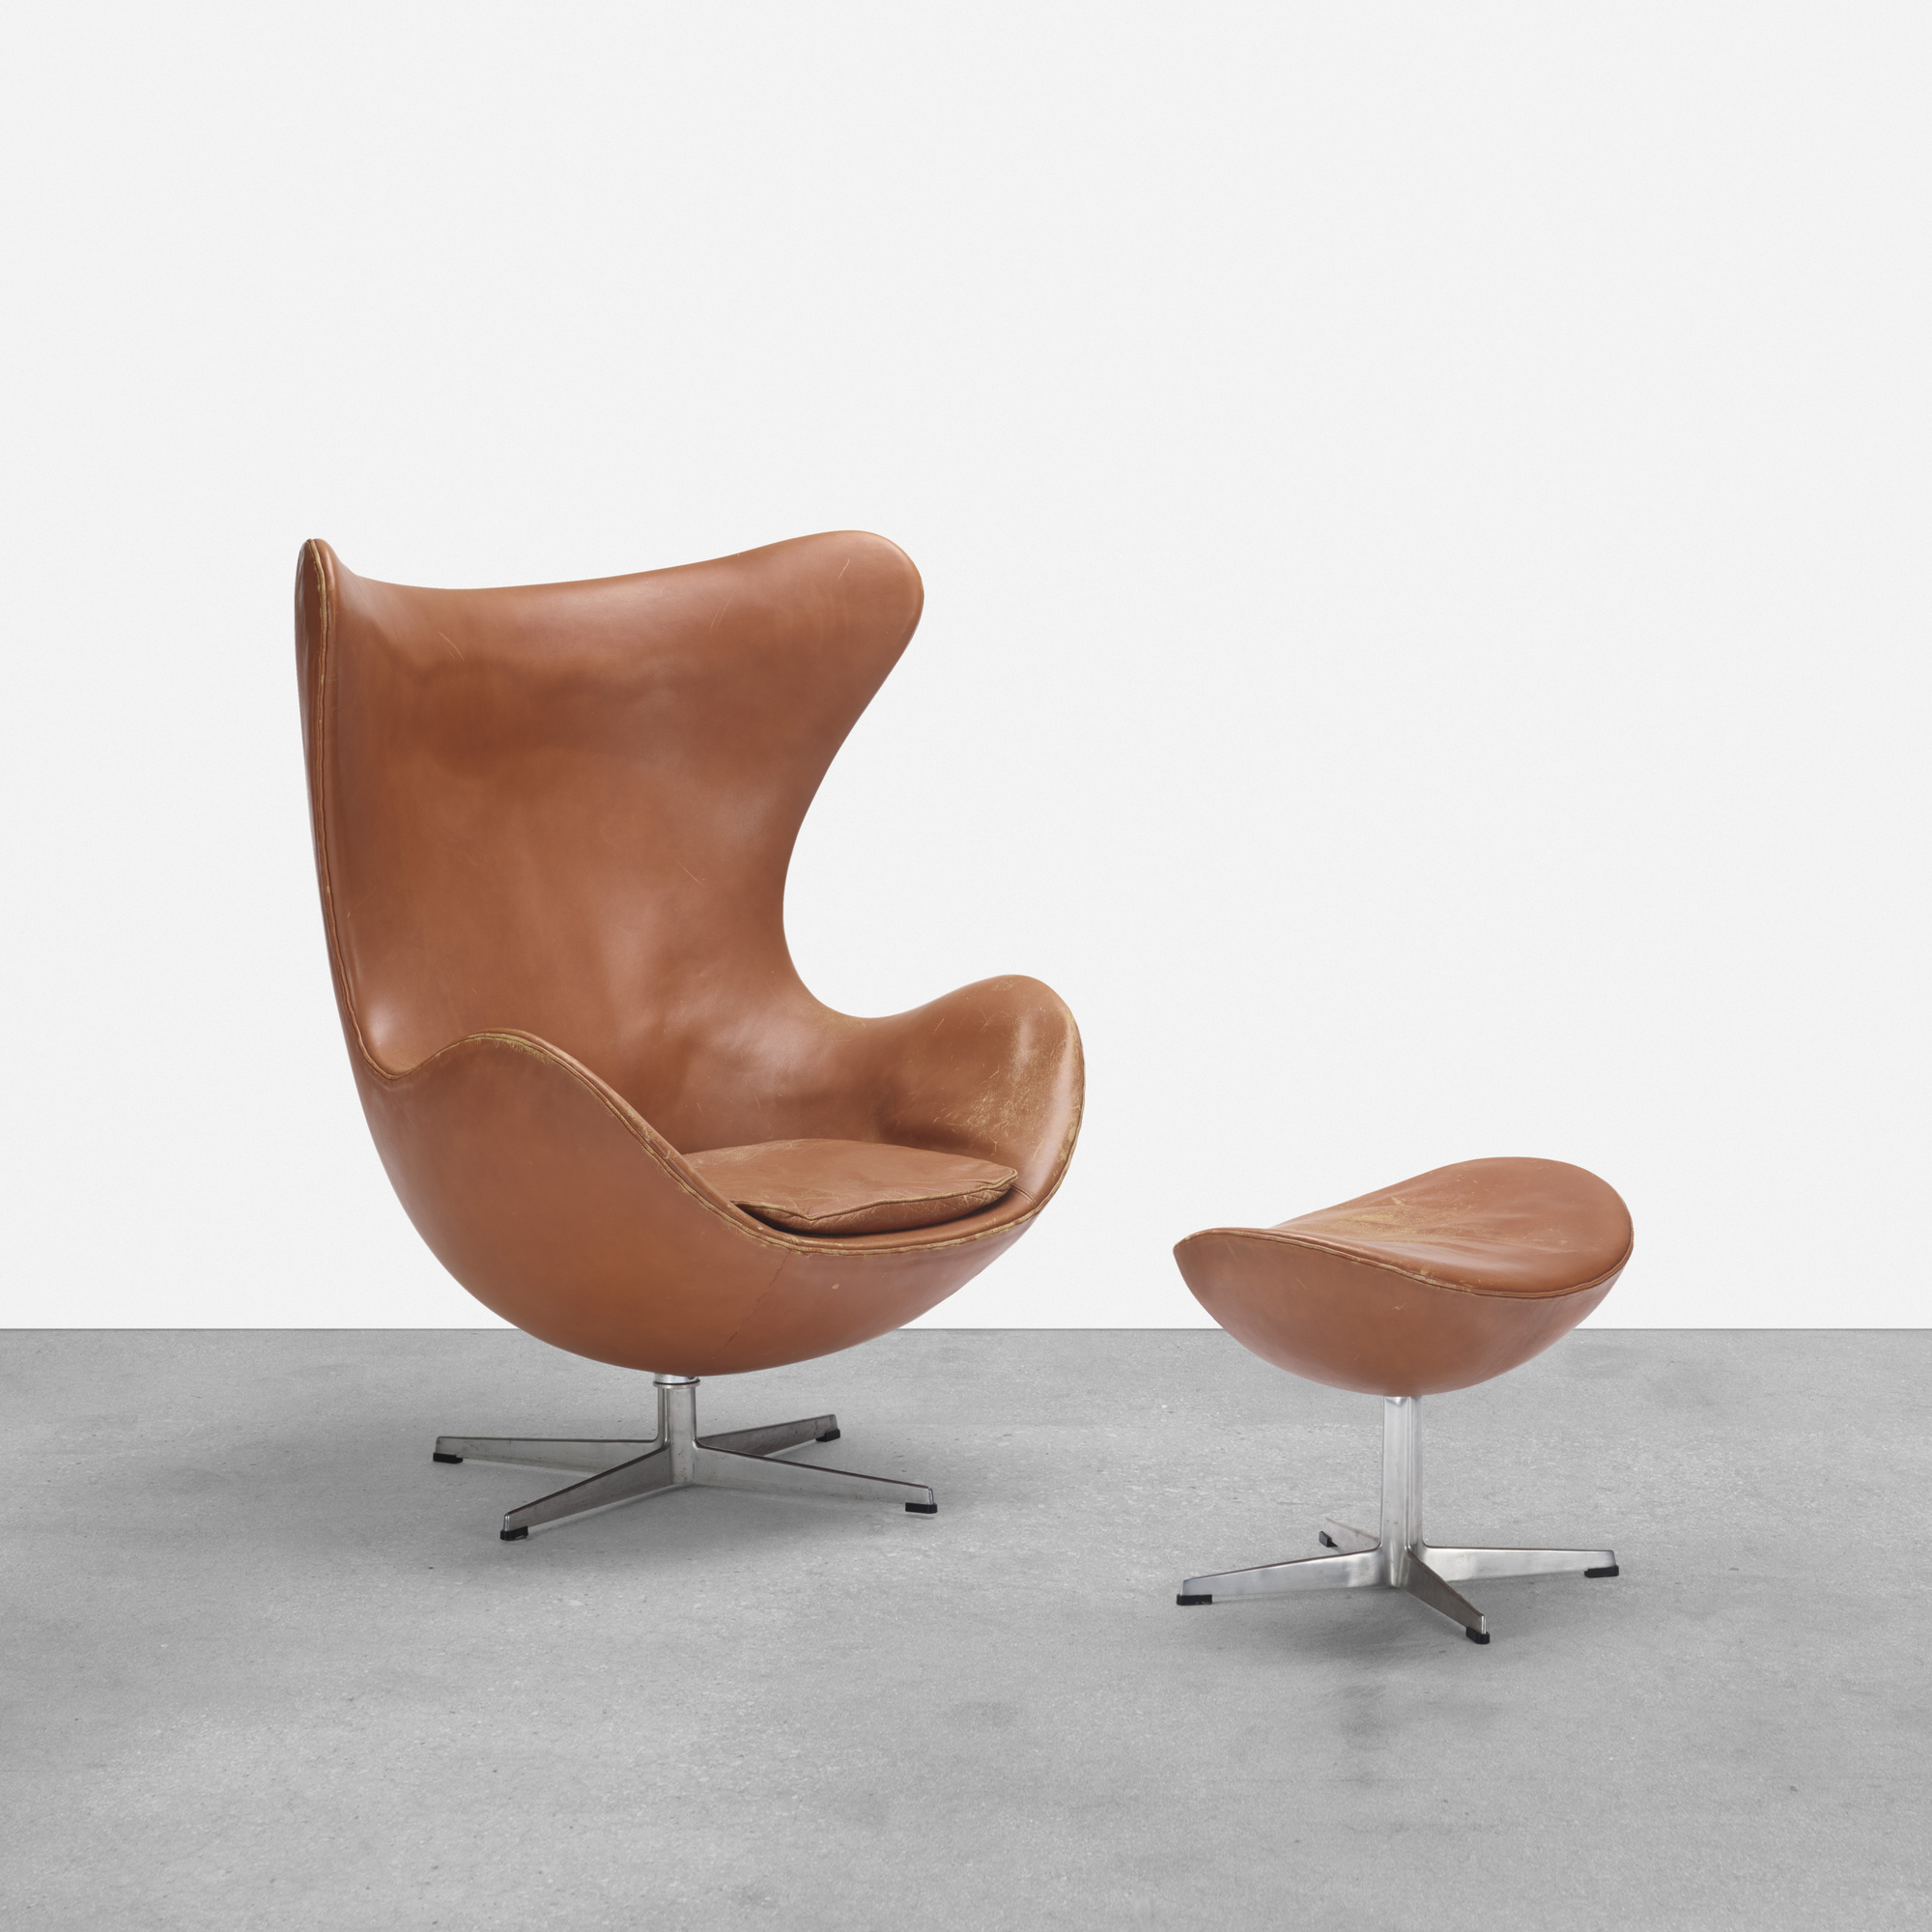 Charmant 163: Arne Jacobsen / Egg Chair And Ottoman (1 Of 3)